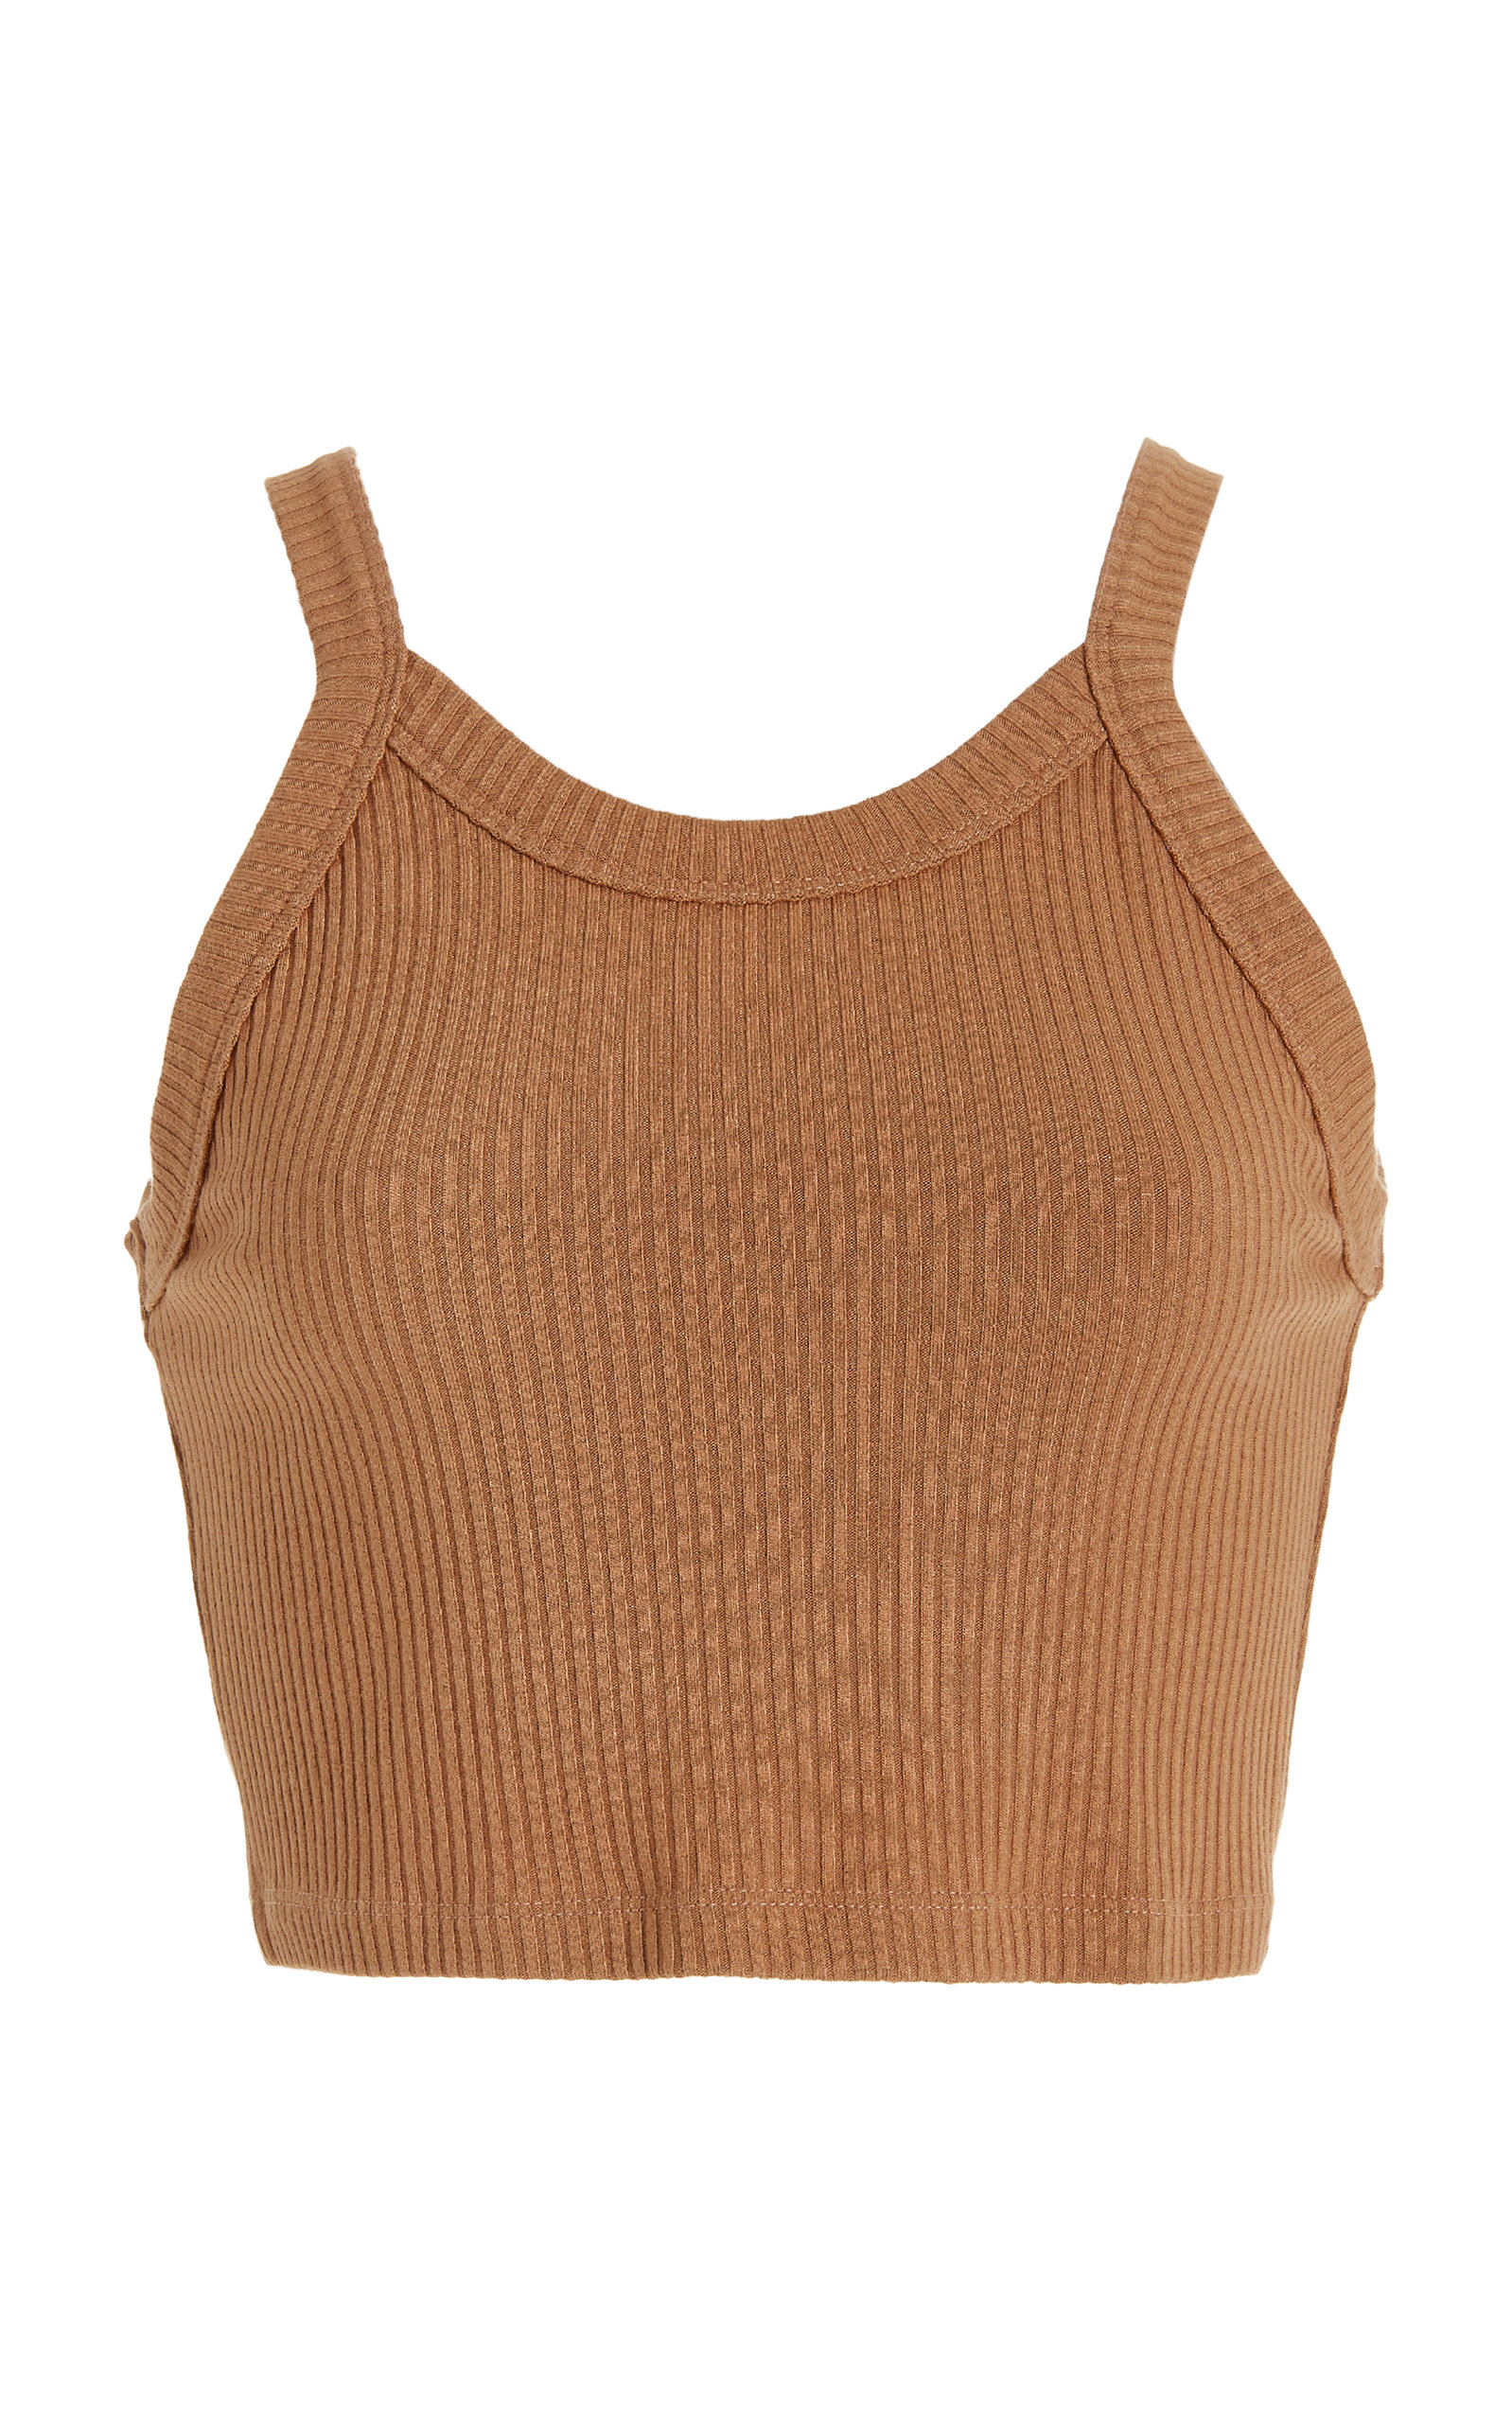 Women's Ali Cropped Ribbed Knit Tank Top